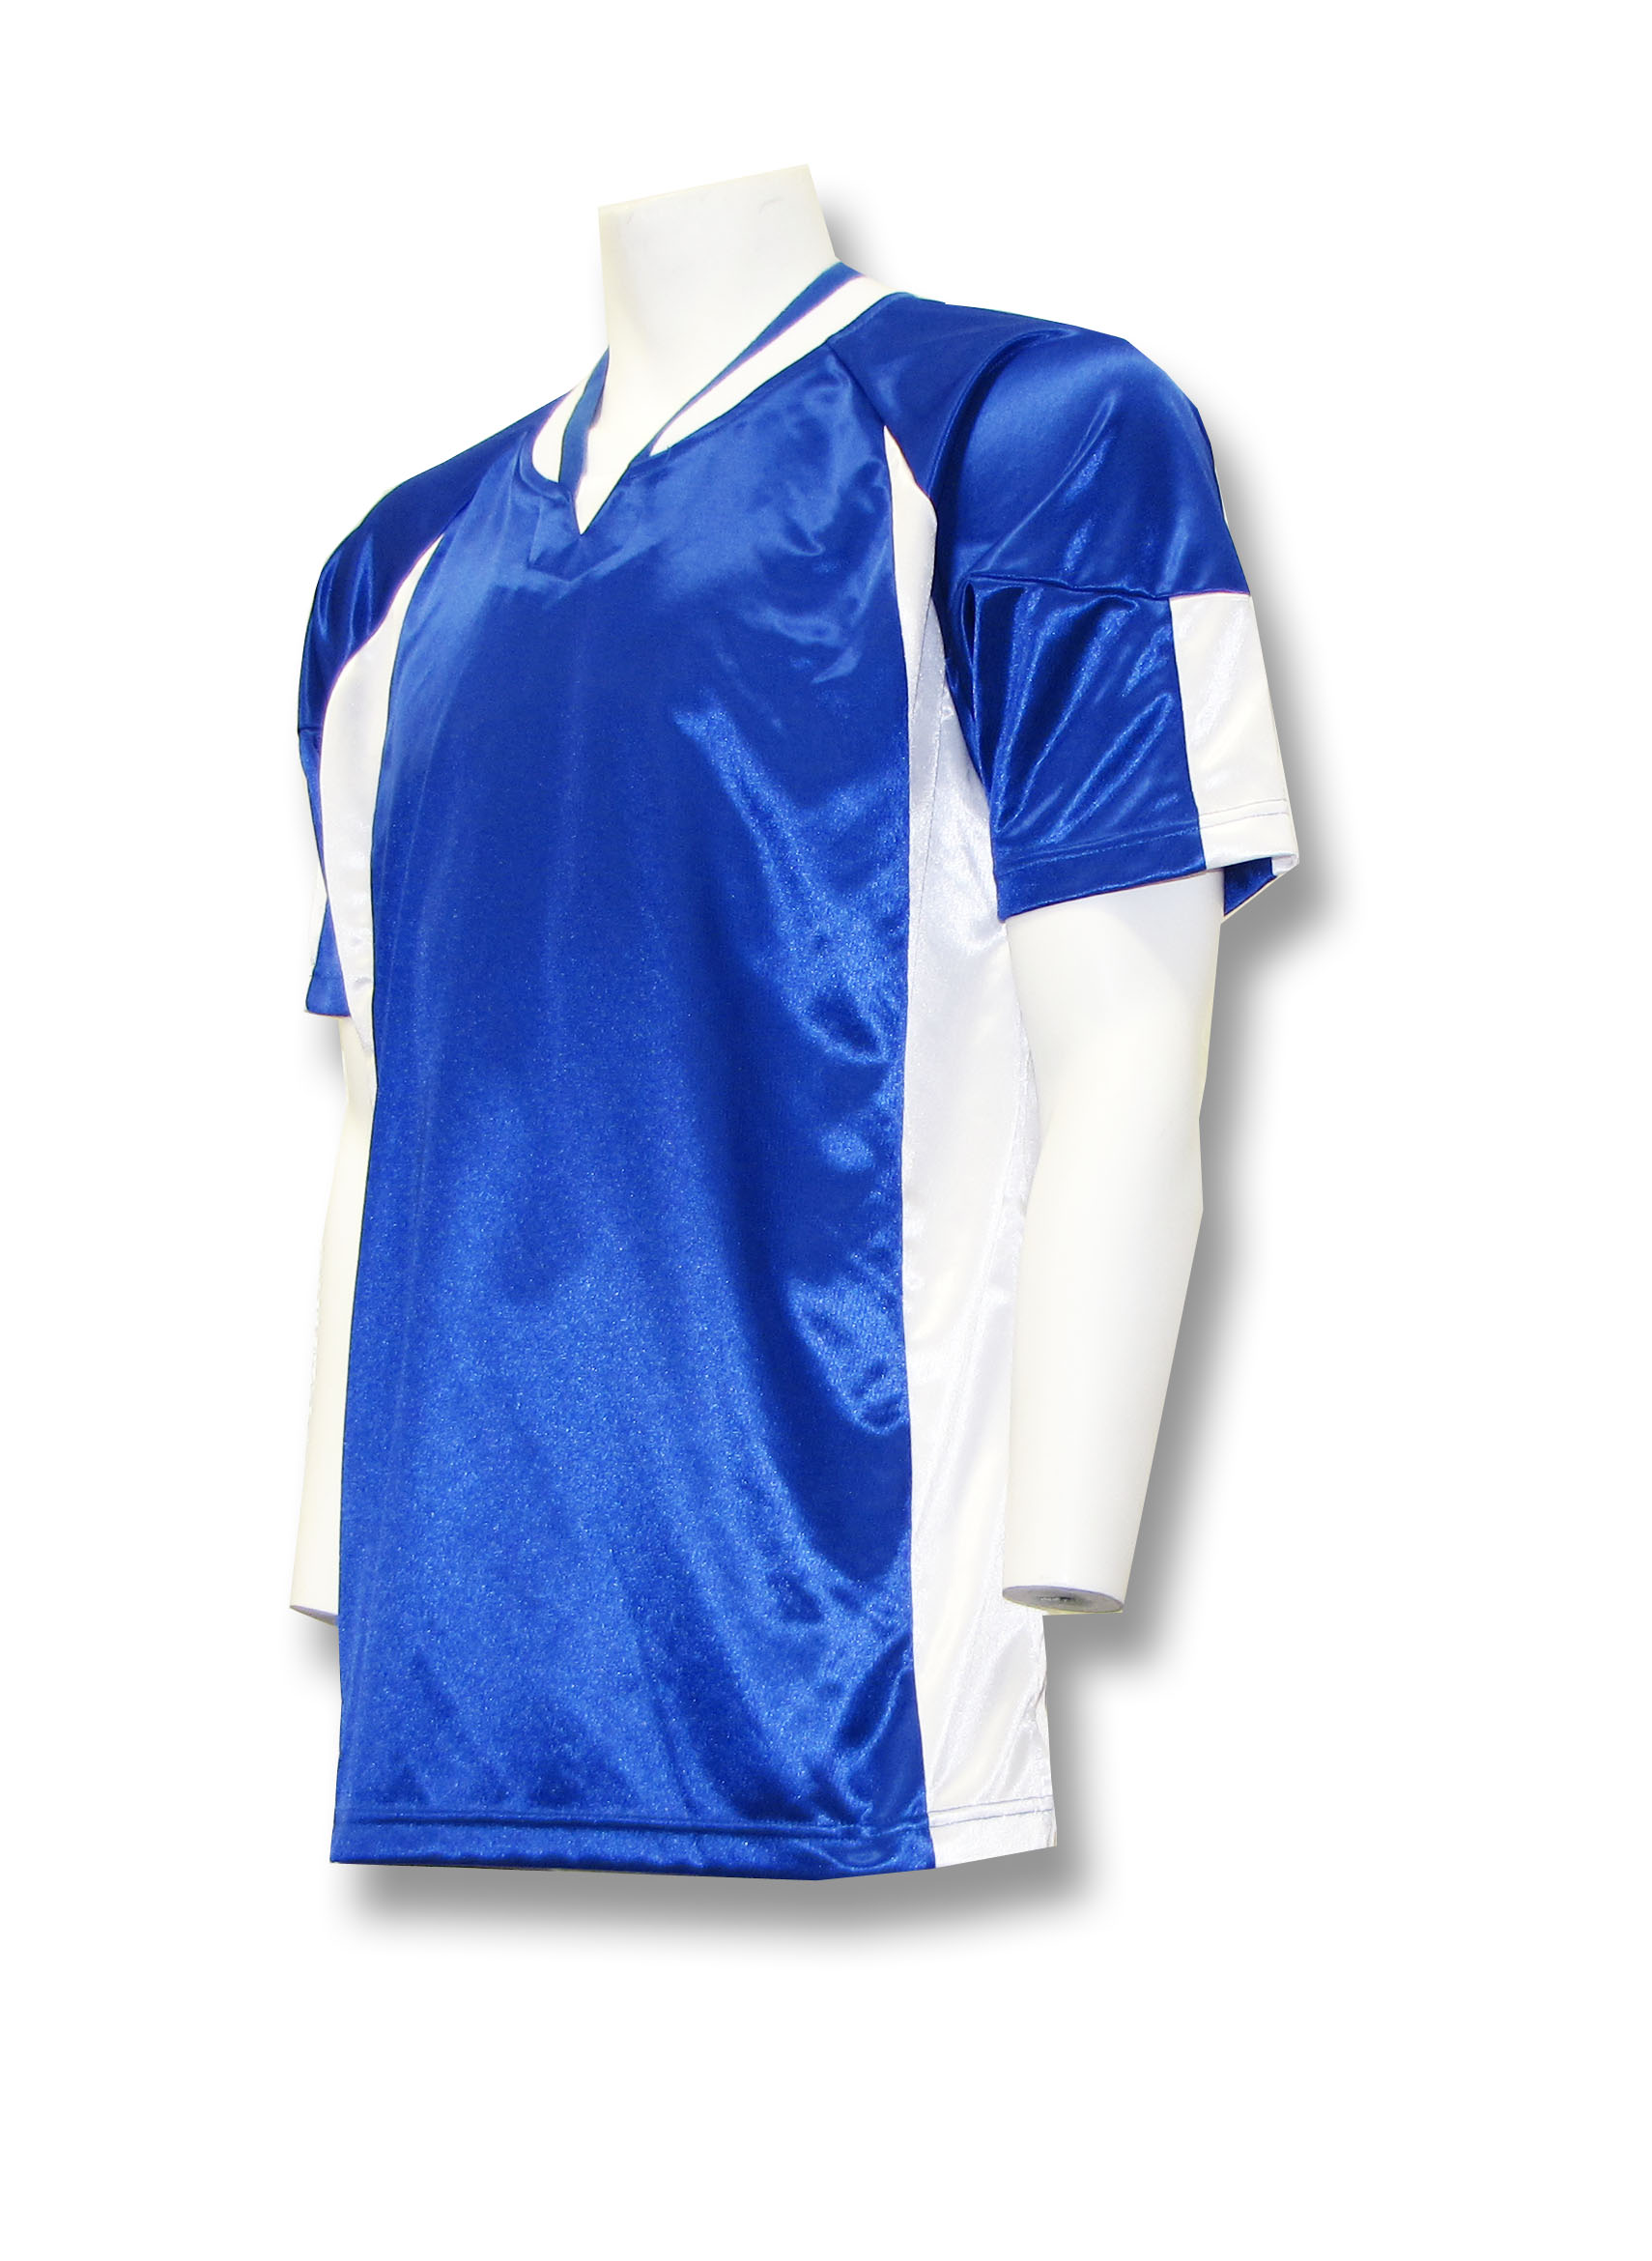 Imperial jersey in royal/white by Code Four Athletics